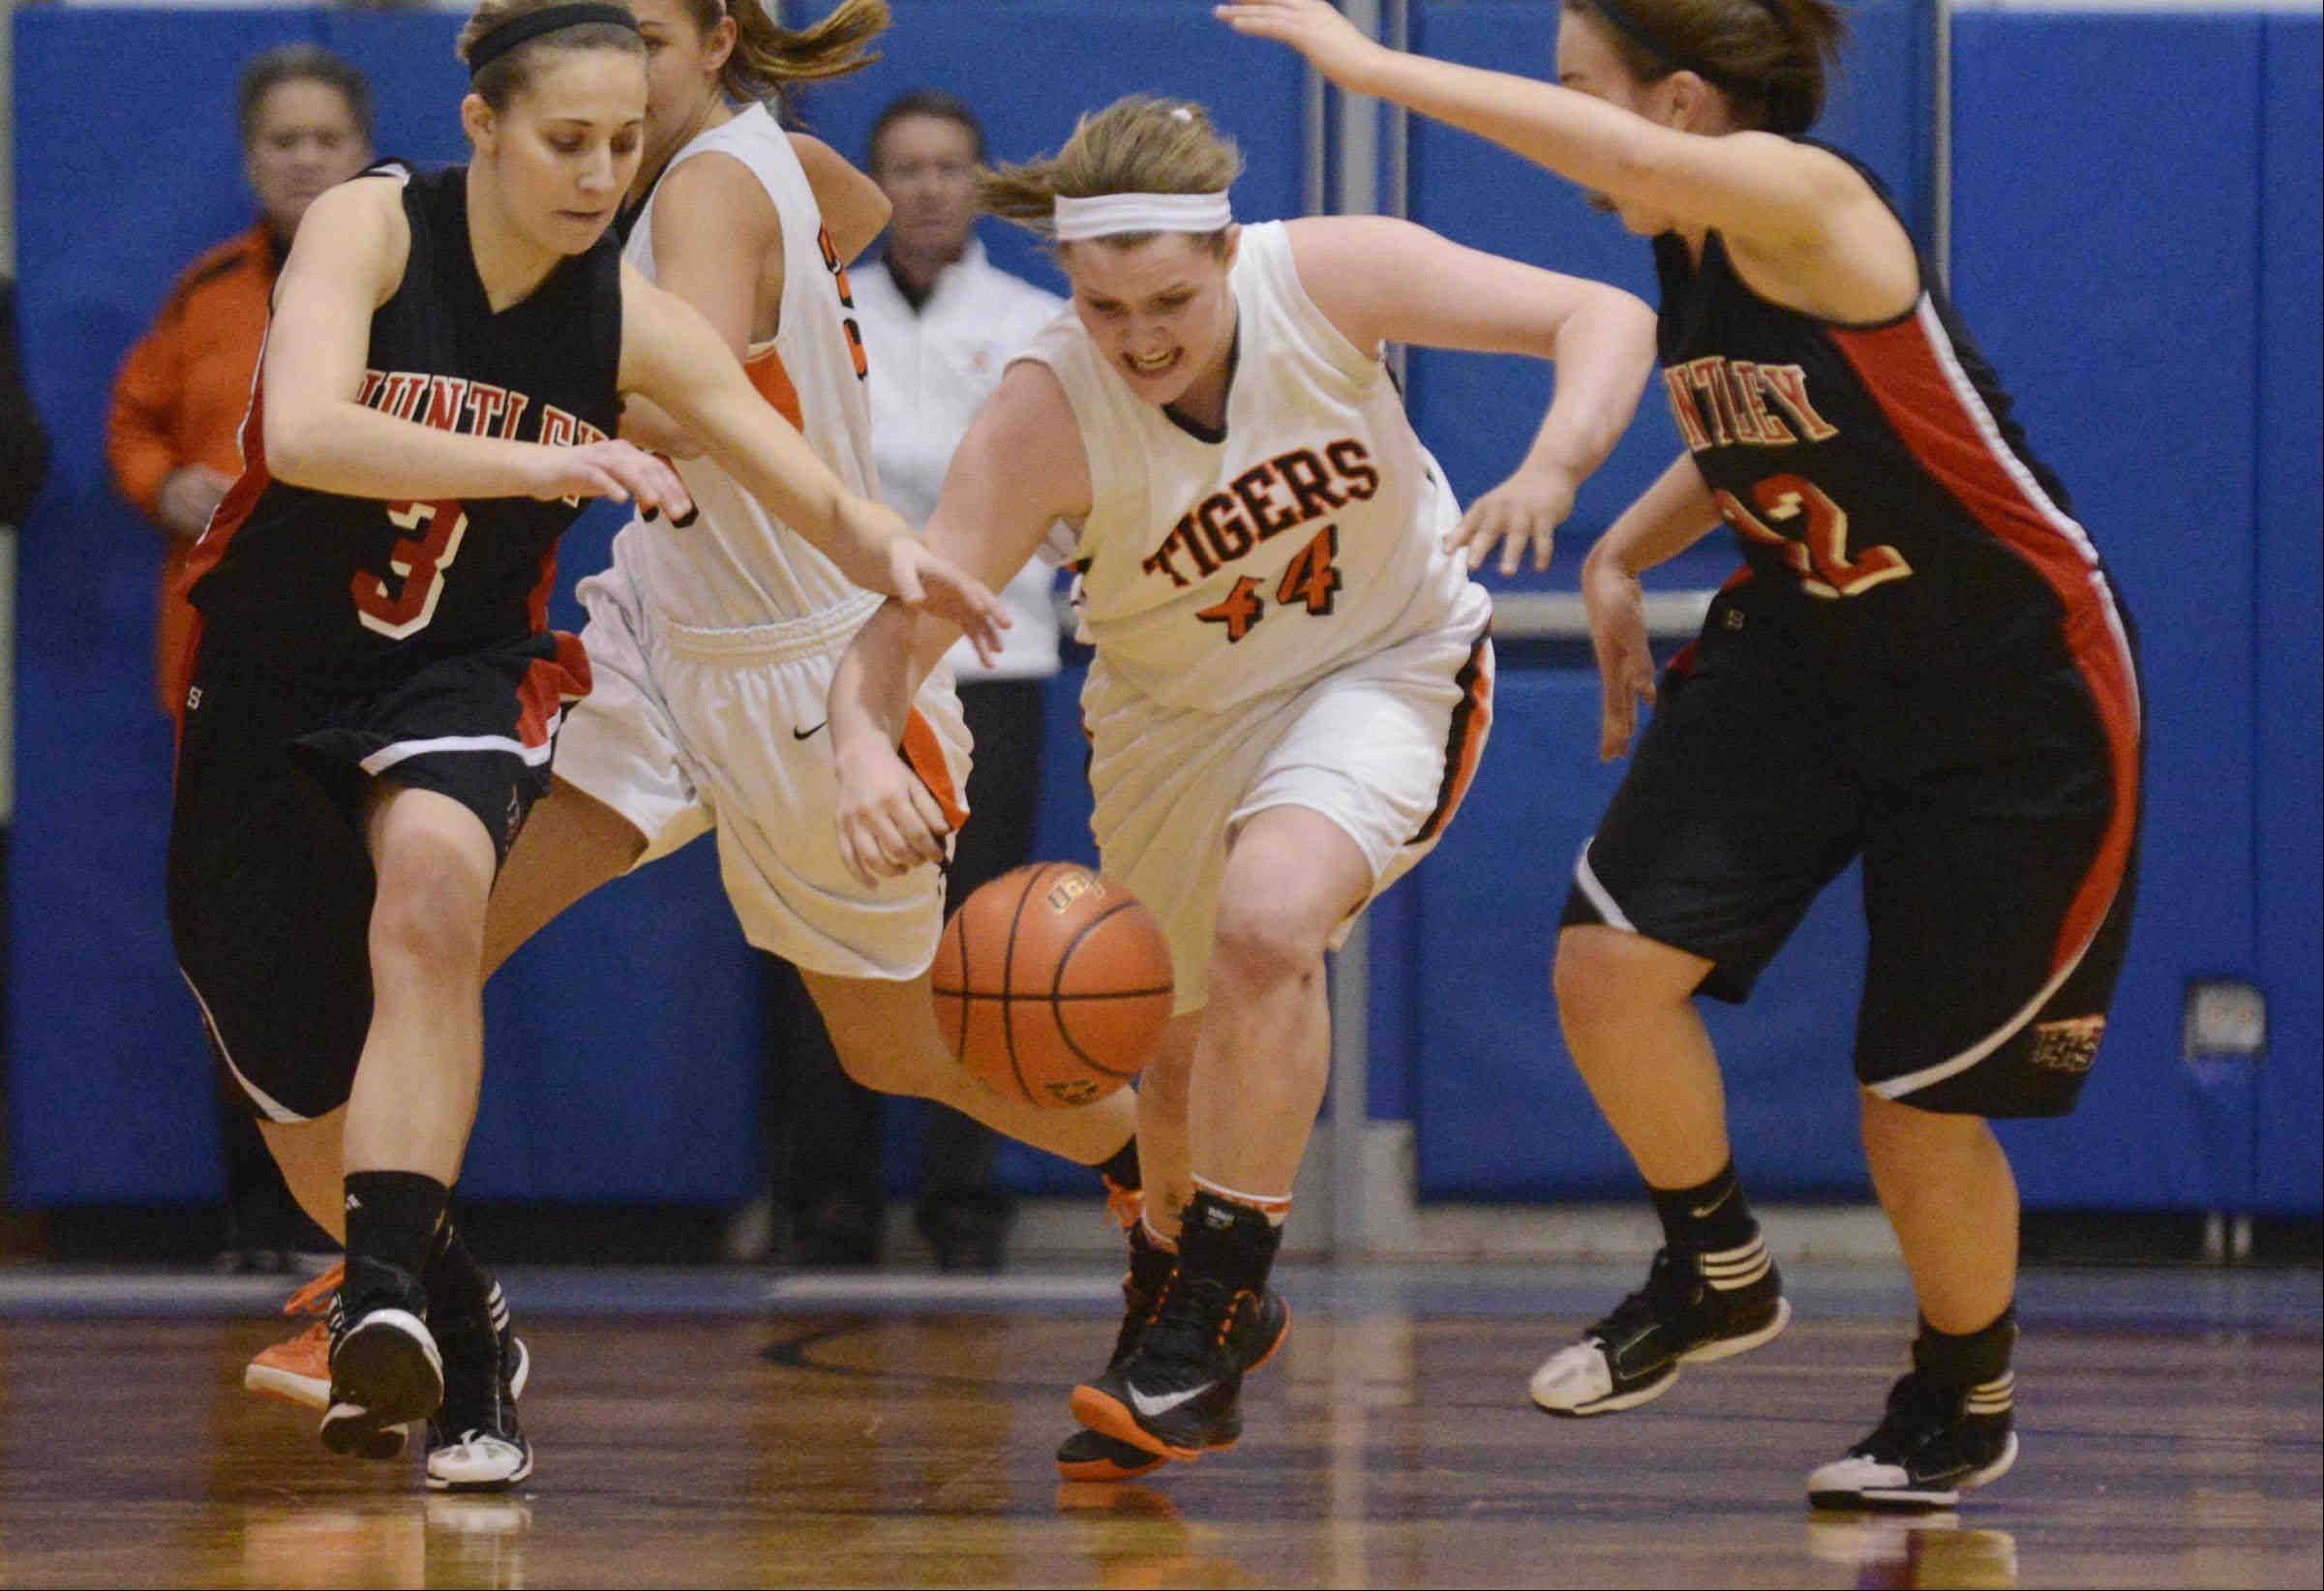 Wheaton Warrenville South's Olivia Linebarger chases a loose ball with Huntley's Amanda Kaniewski and Haley Ream Monday in the Class 4A Dundee-Crown supersectional game in Carpentersville.